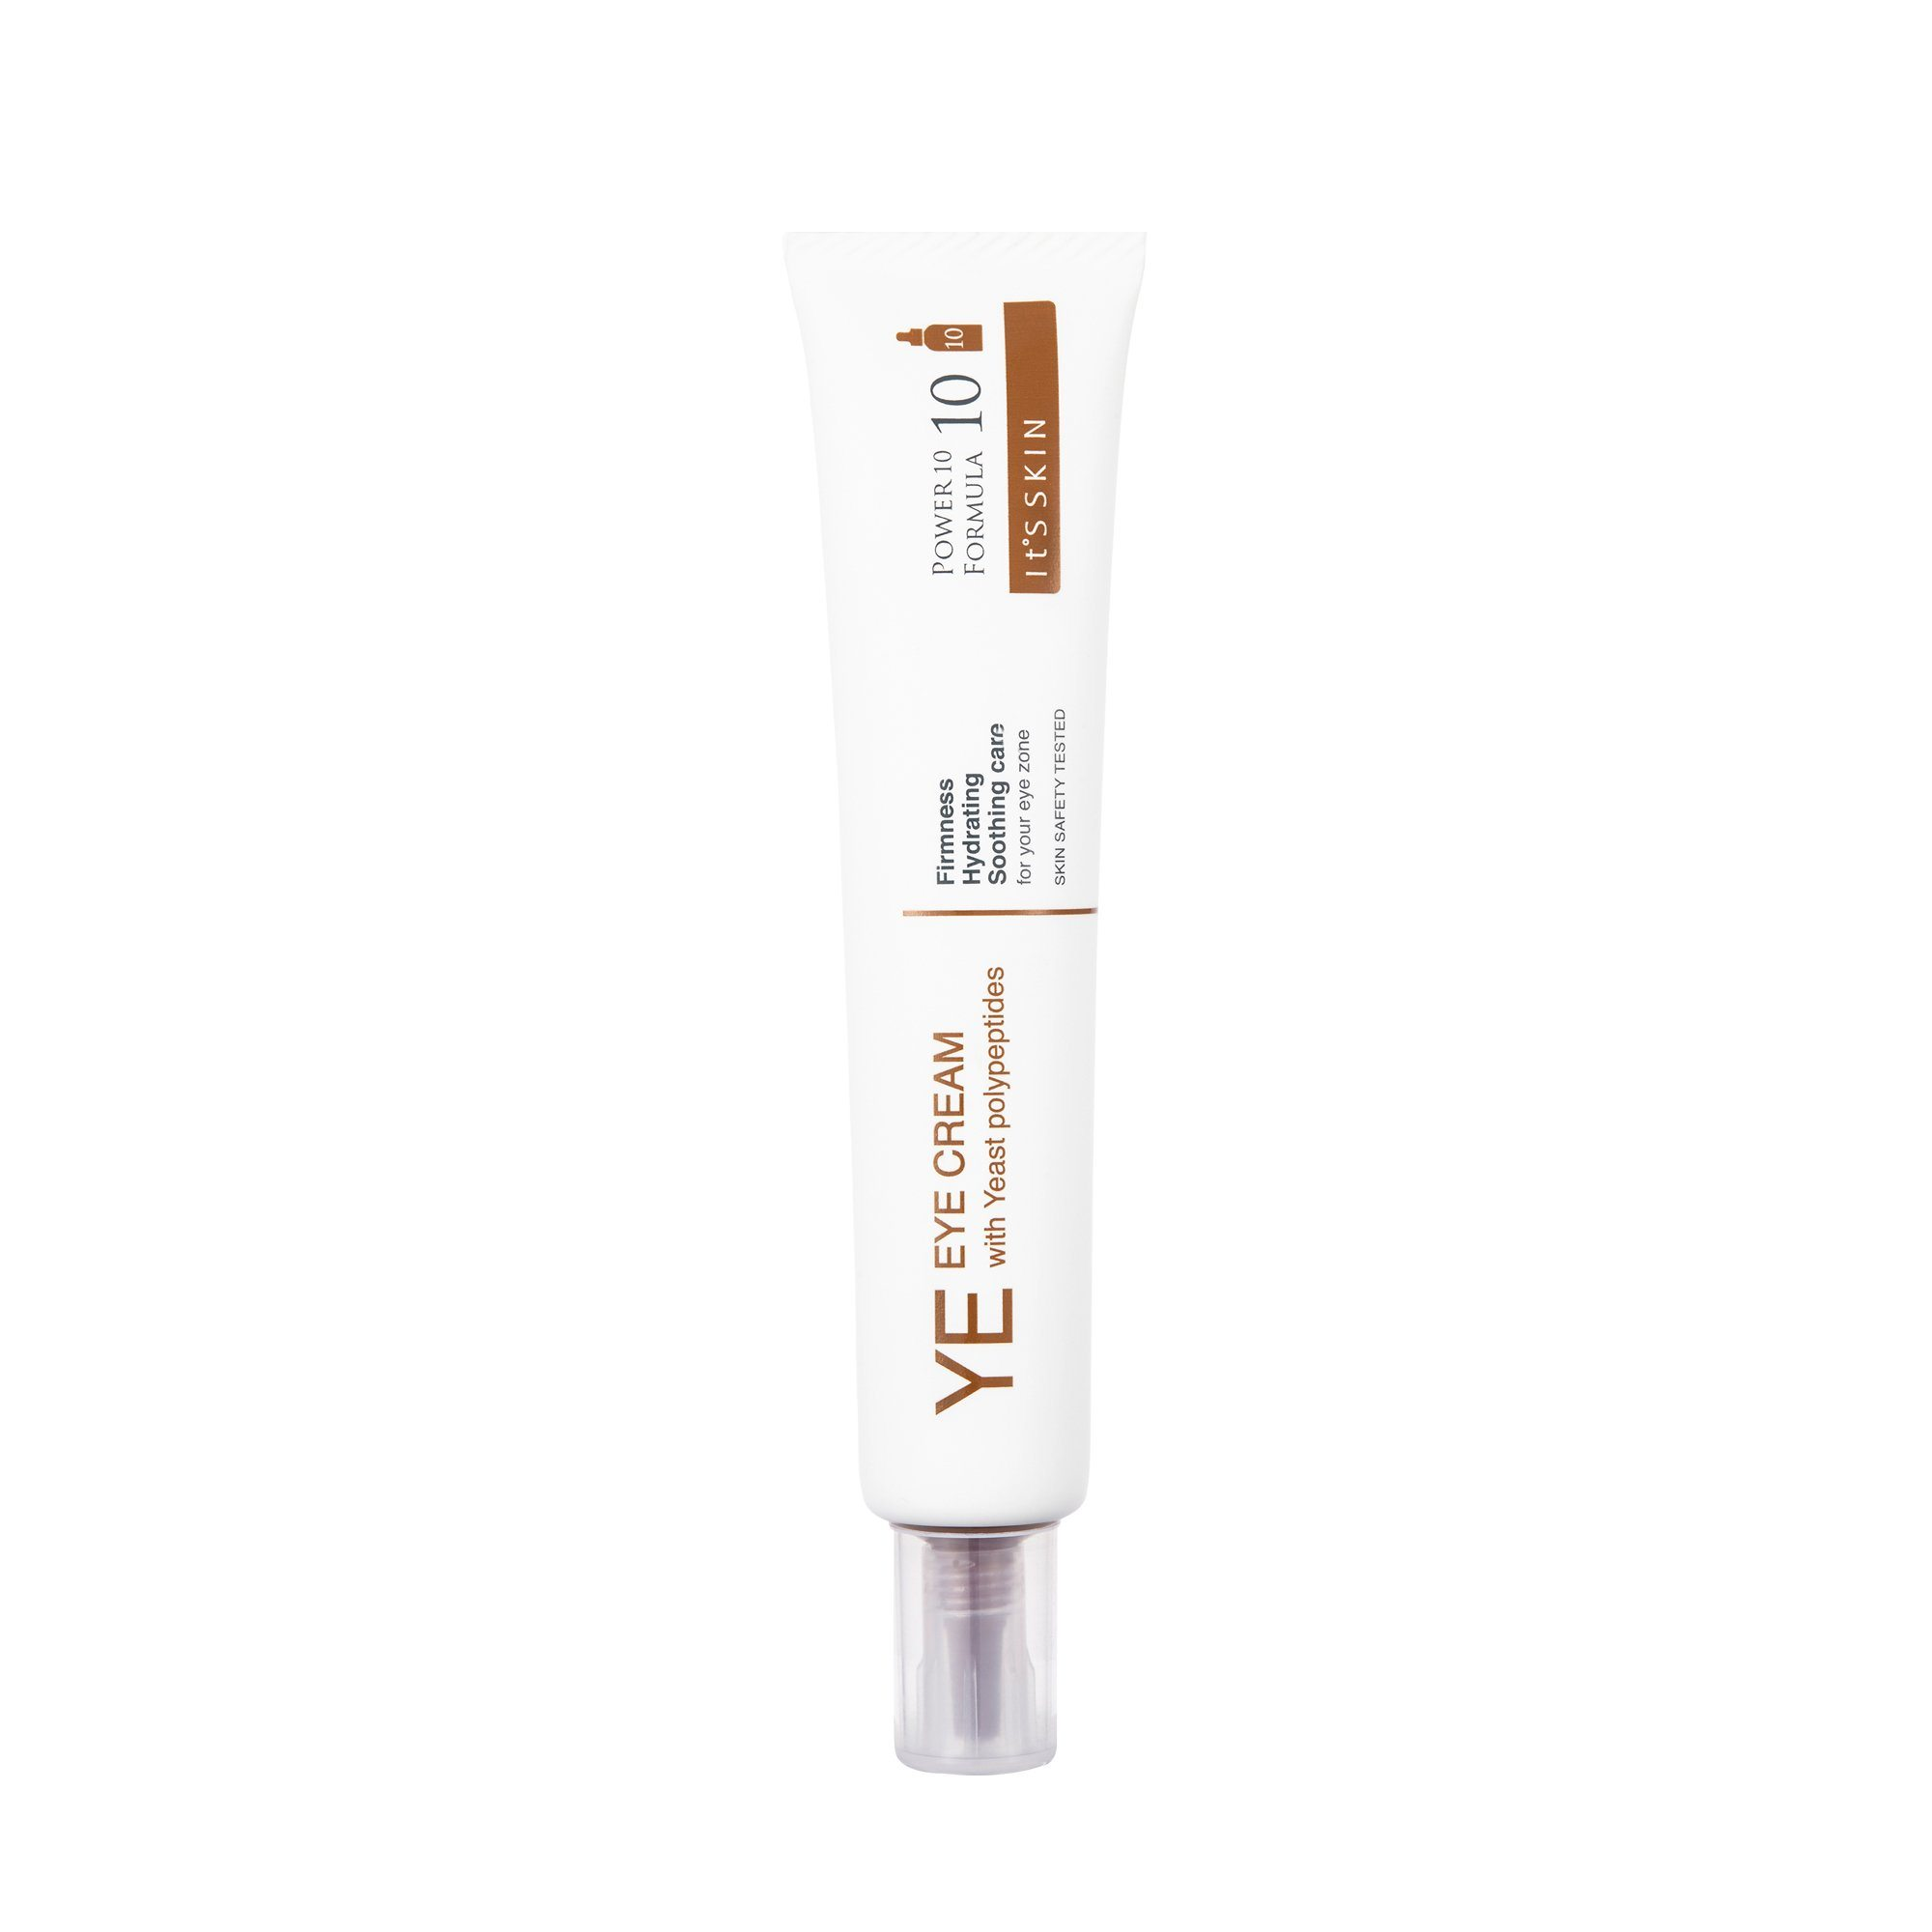 Health & Beauty > Personal Care > Cosmetics > Skin Care > Lotion & Moisturizer - Power 10 Formula YE Eye Cream Krem Pod Oczy 30 Ml